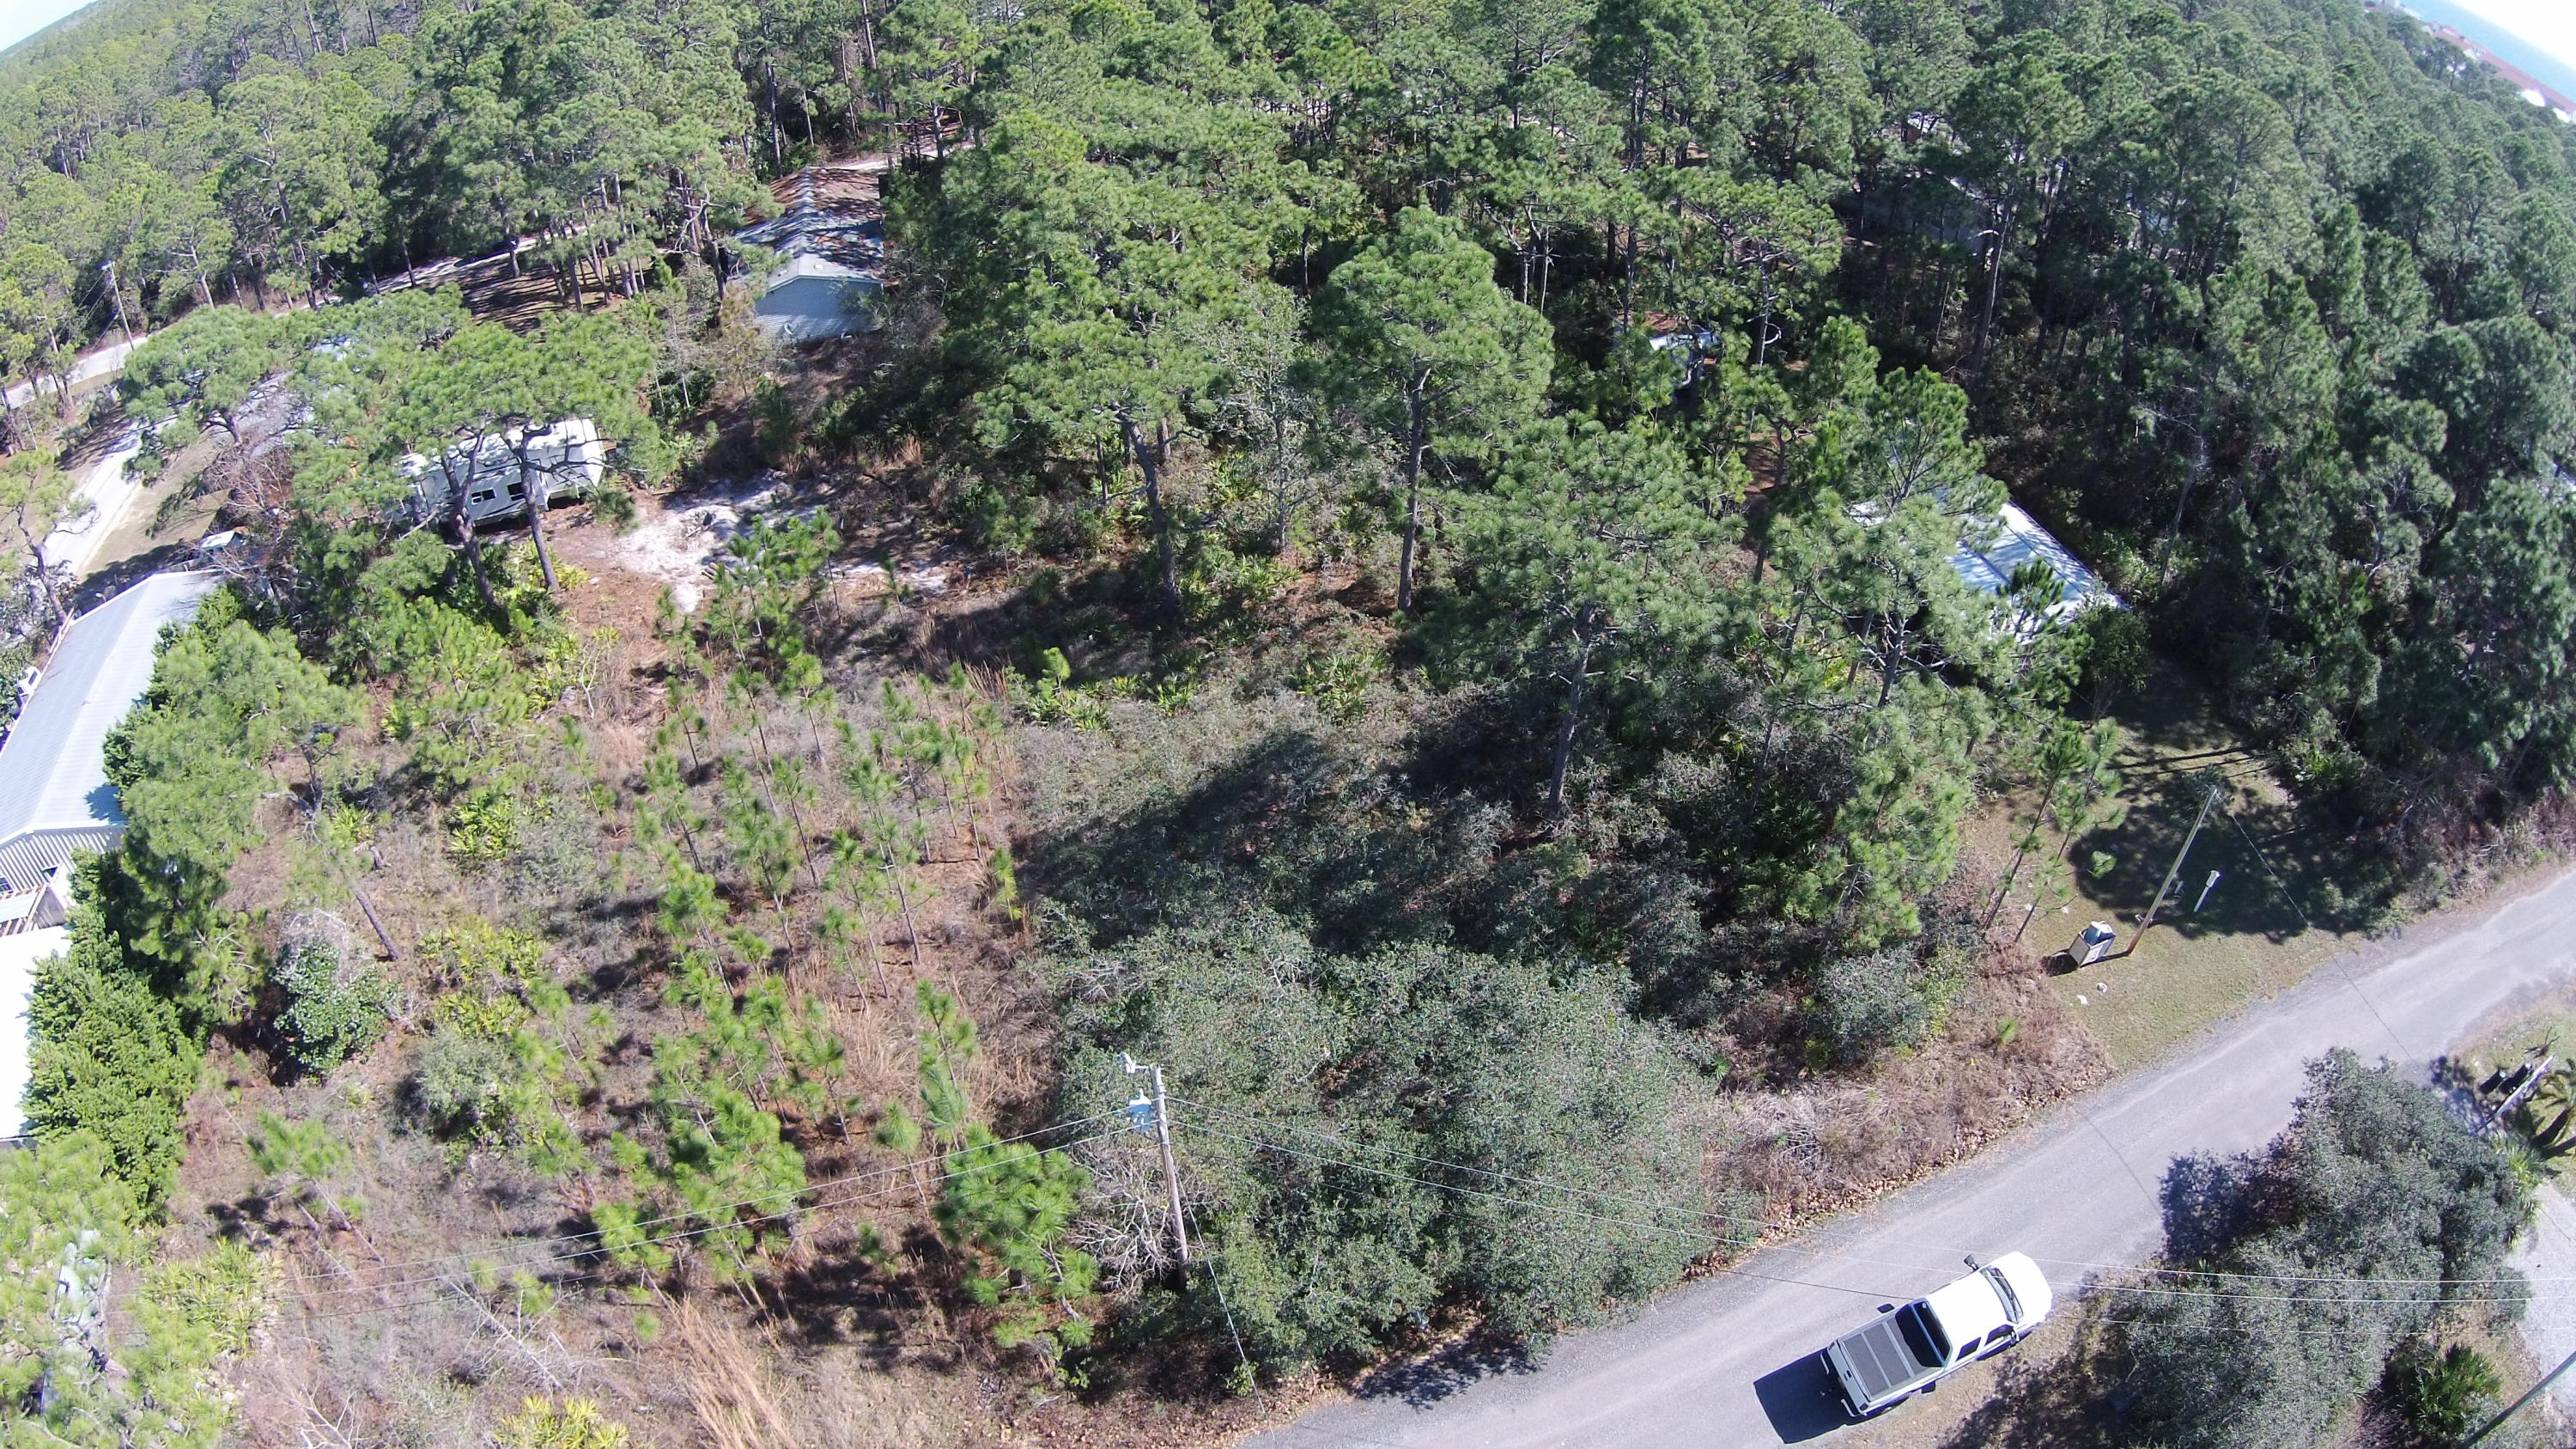 Lot 21 Shady Pines,Santa Rosa Beach,Florida 32459,Vacant land,Shady Pines,20131126143817002353000000